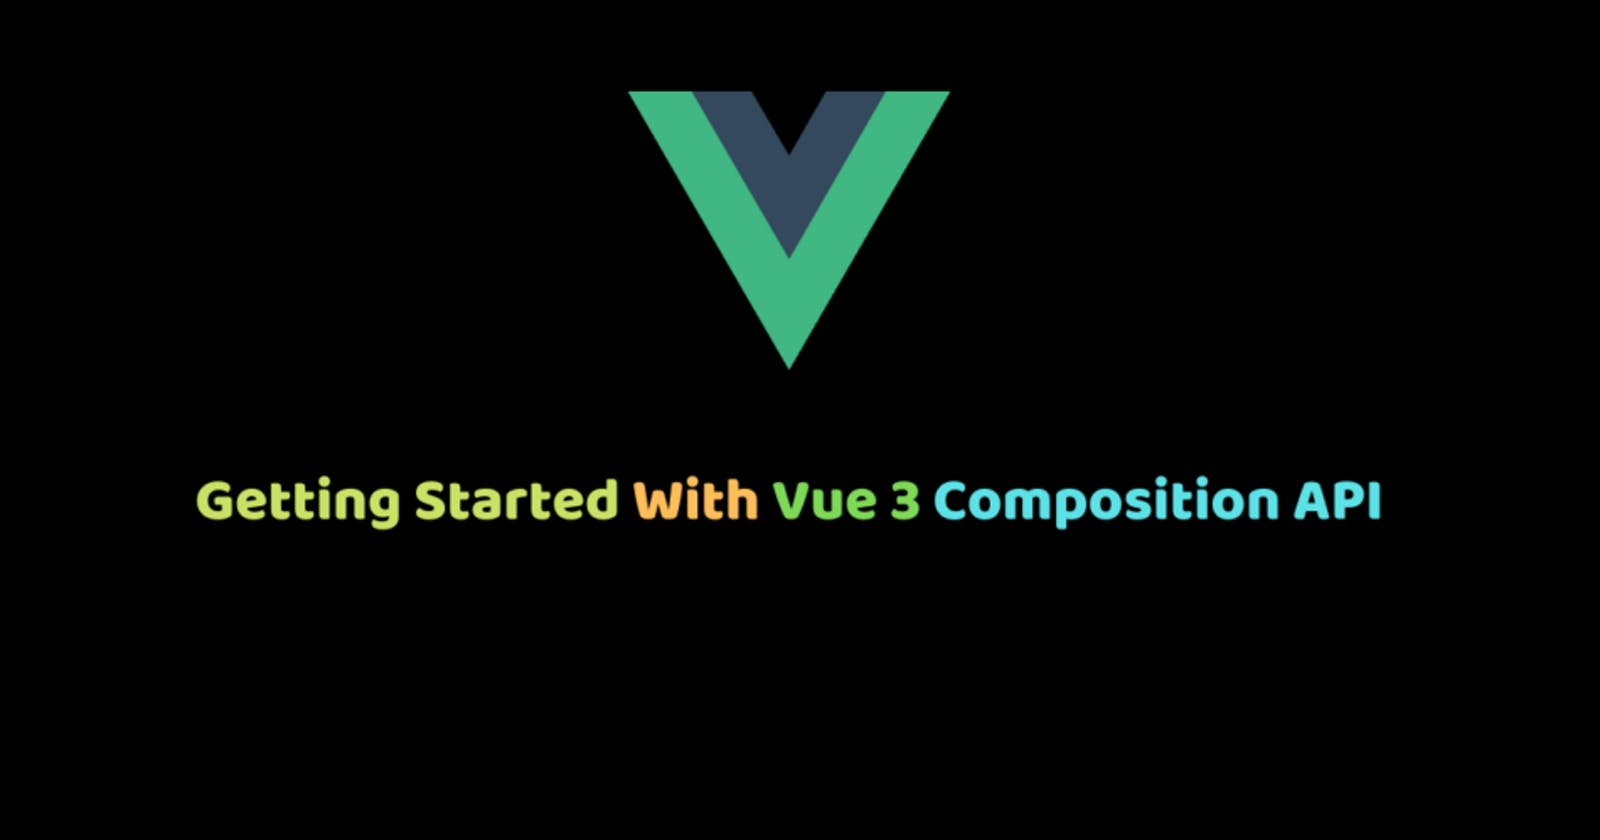 Getting Started With Vue 3 Composition API